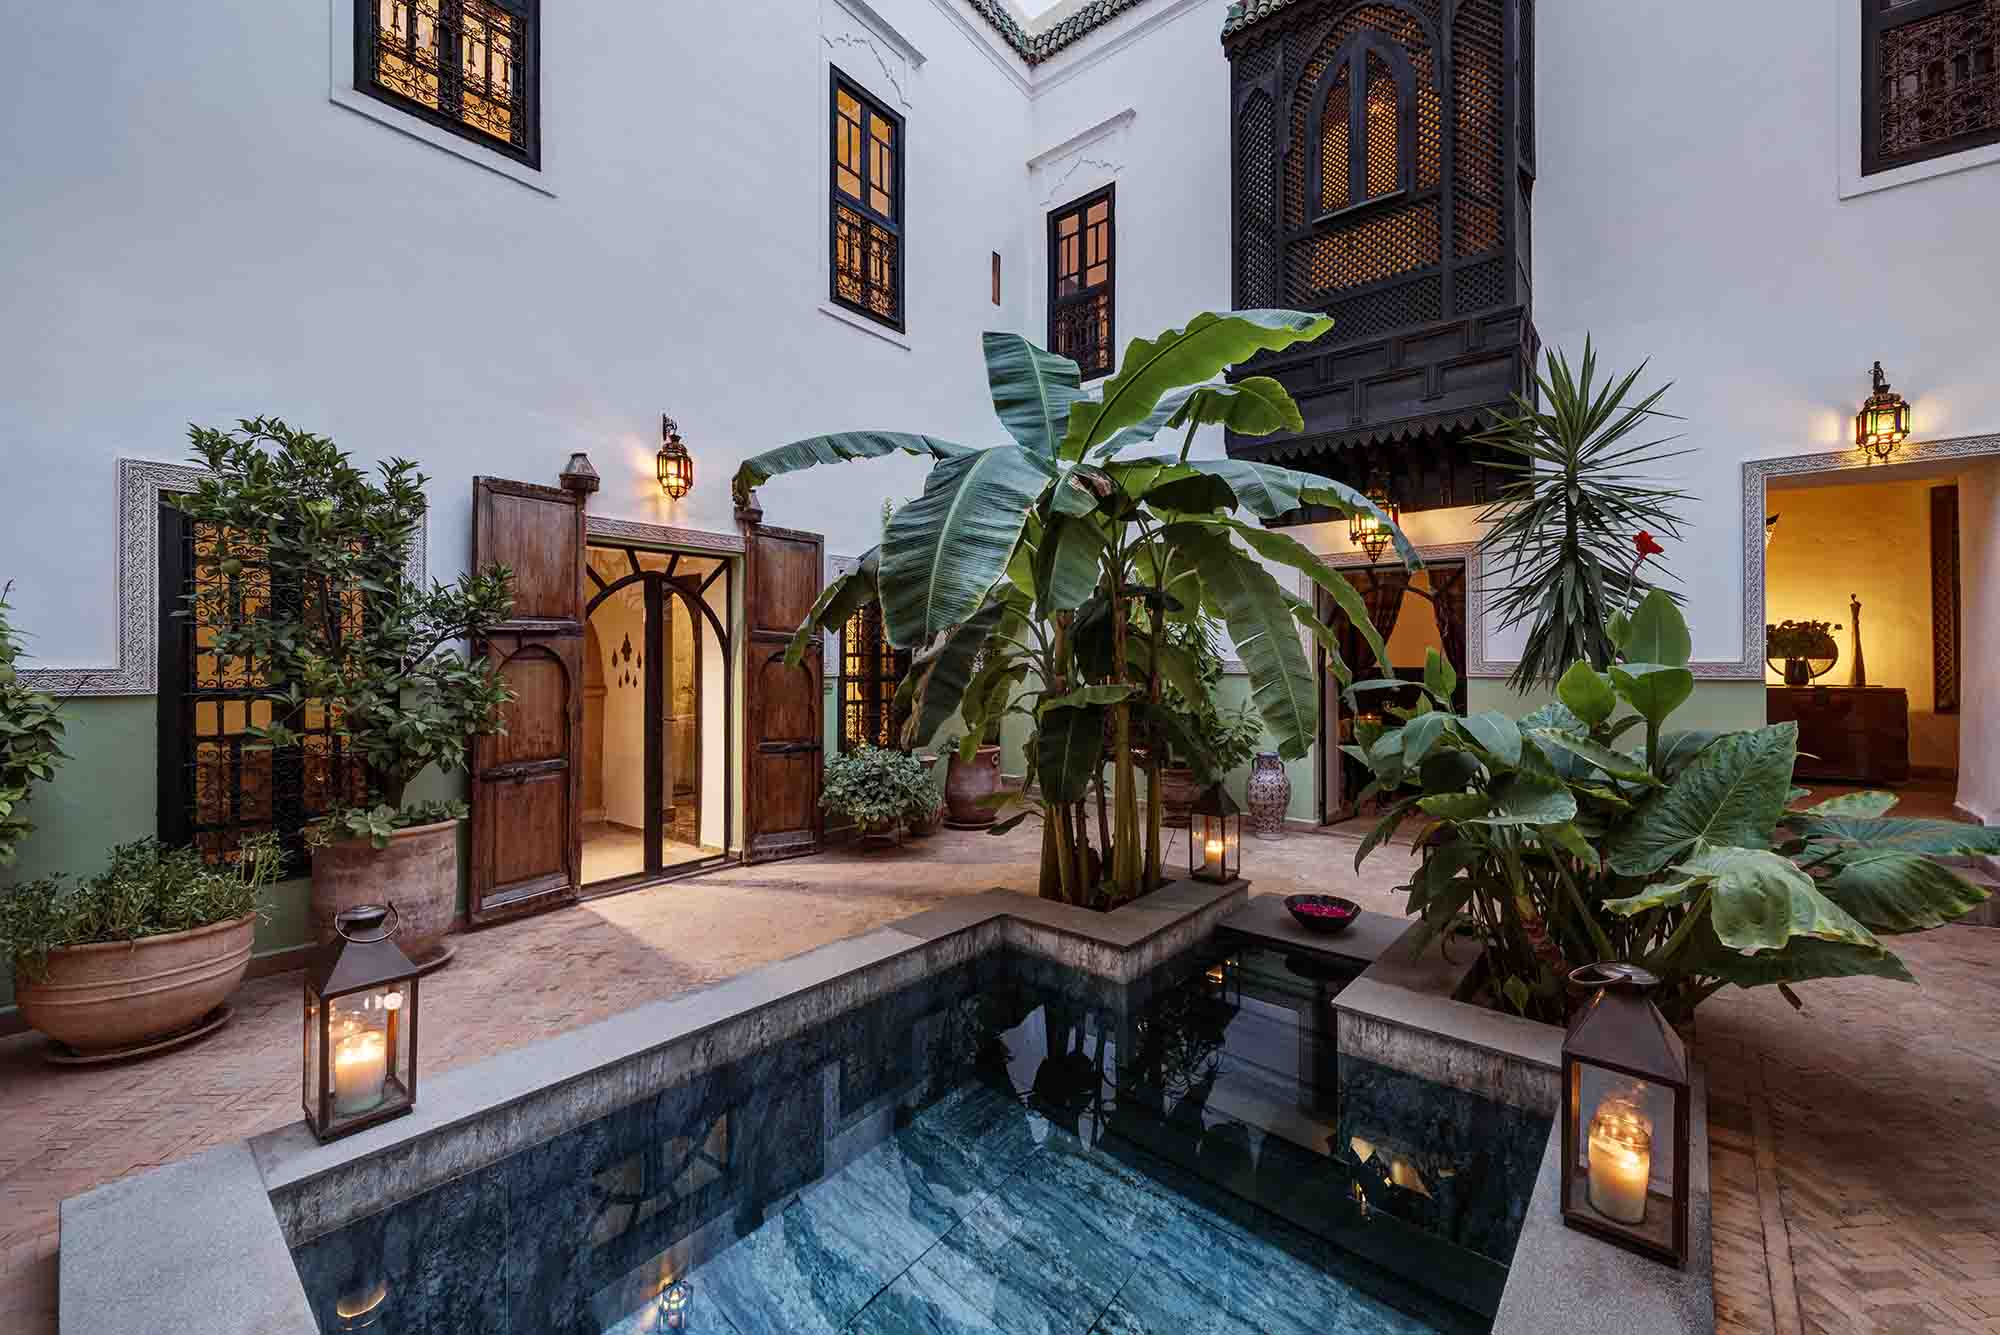 RIAD AZZAR GUEST HOUSE MARRAKECH PATIO